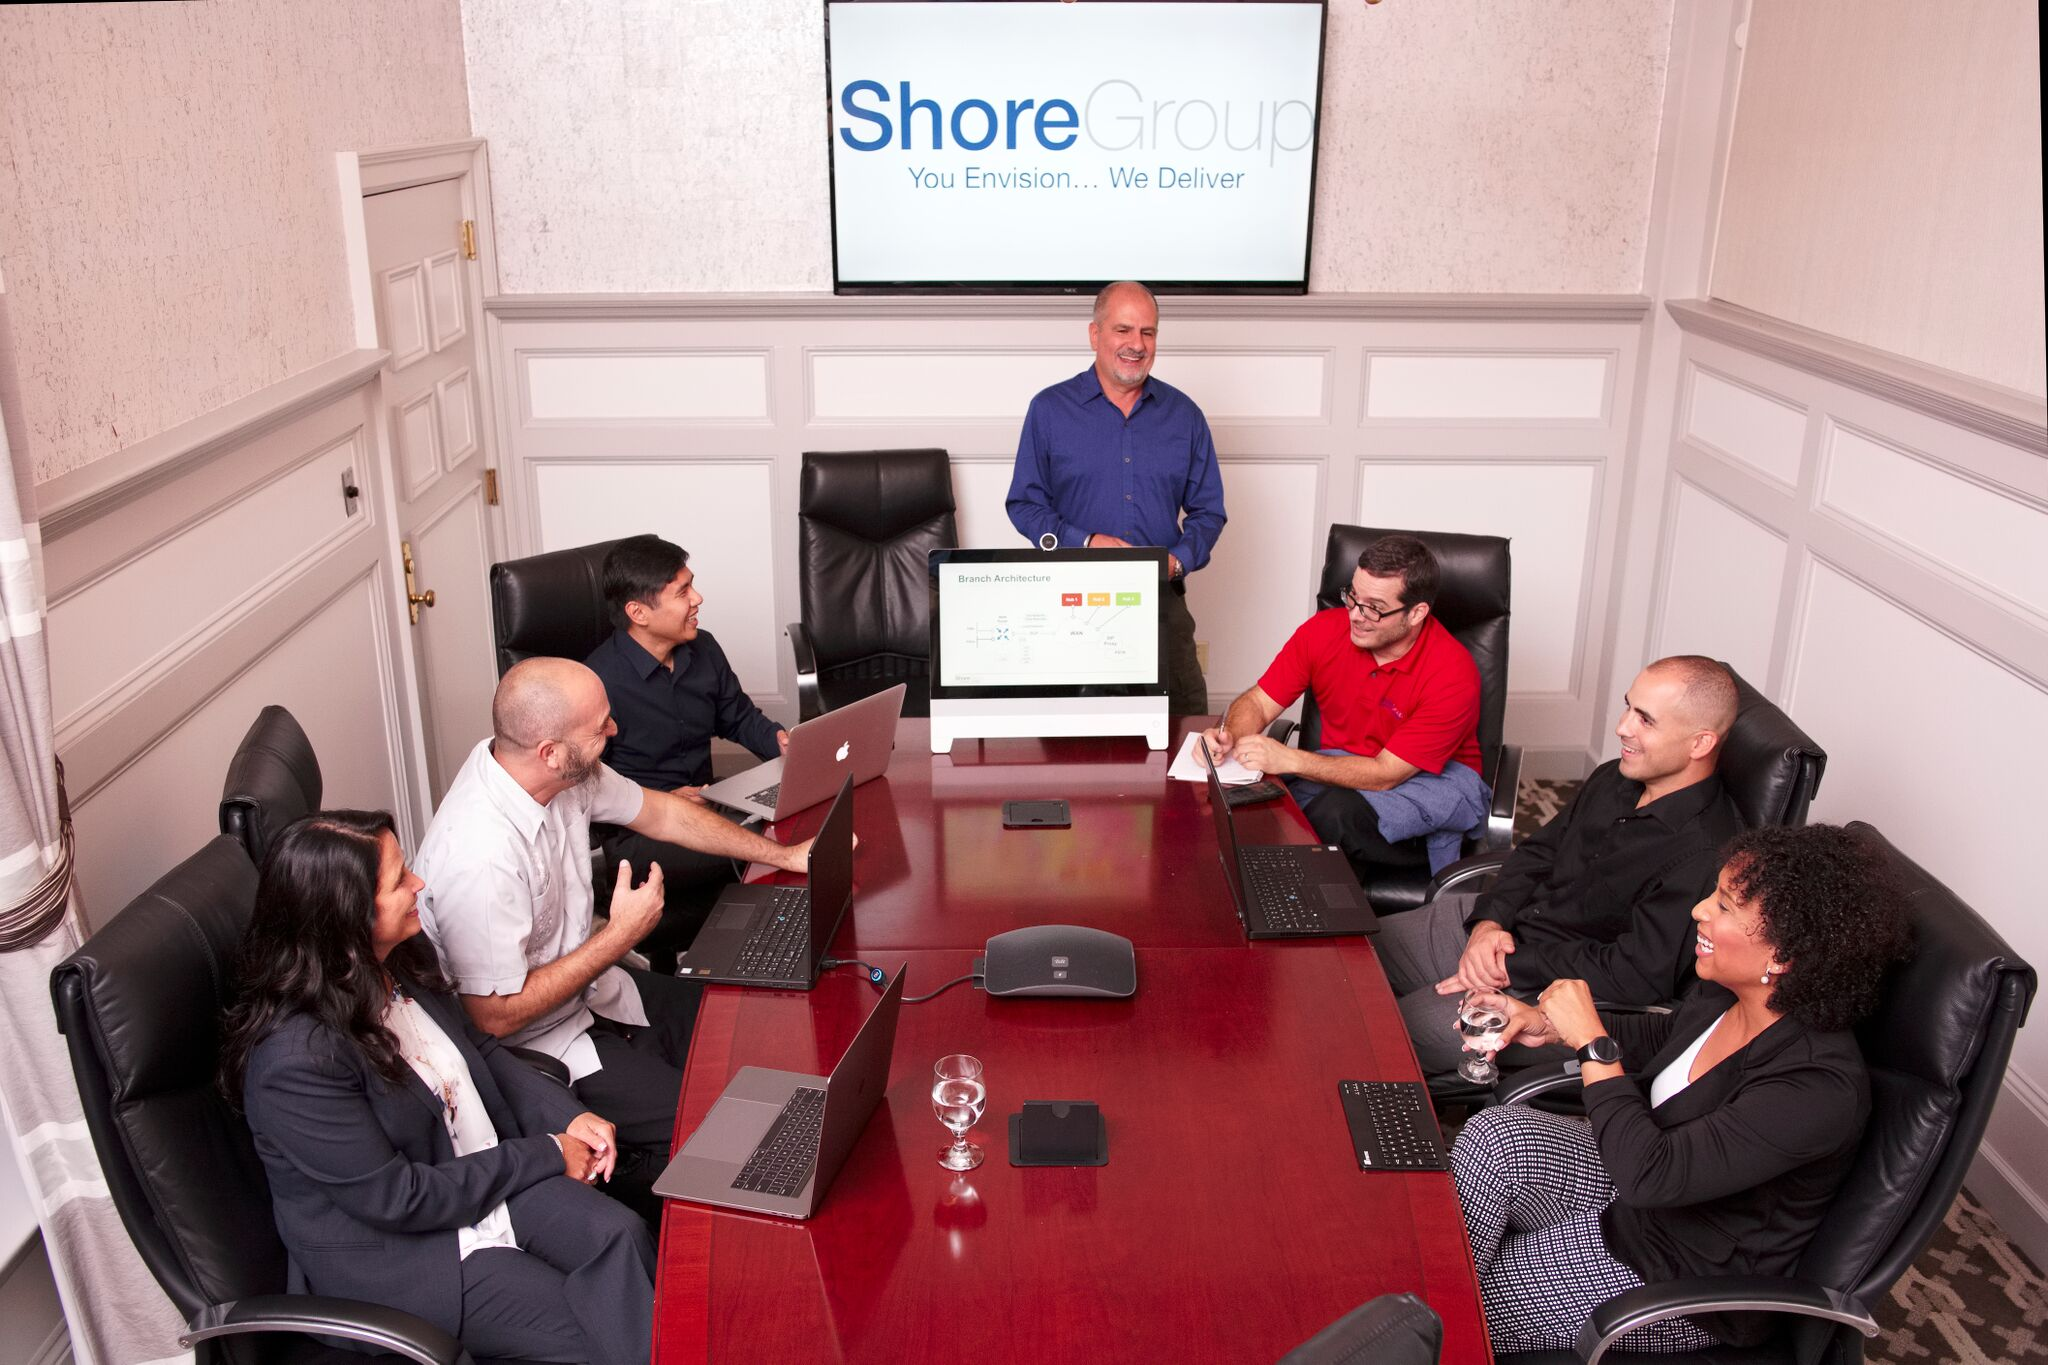 shoregroup employees in a meeting